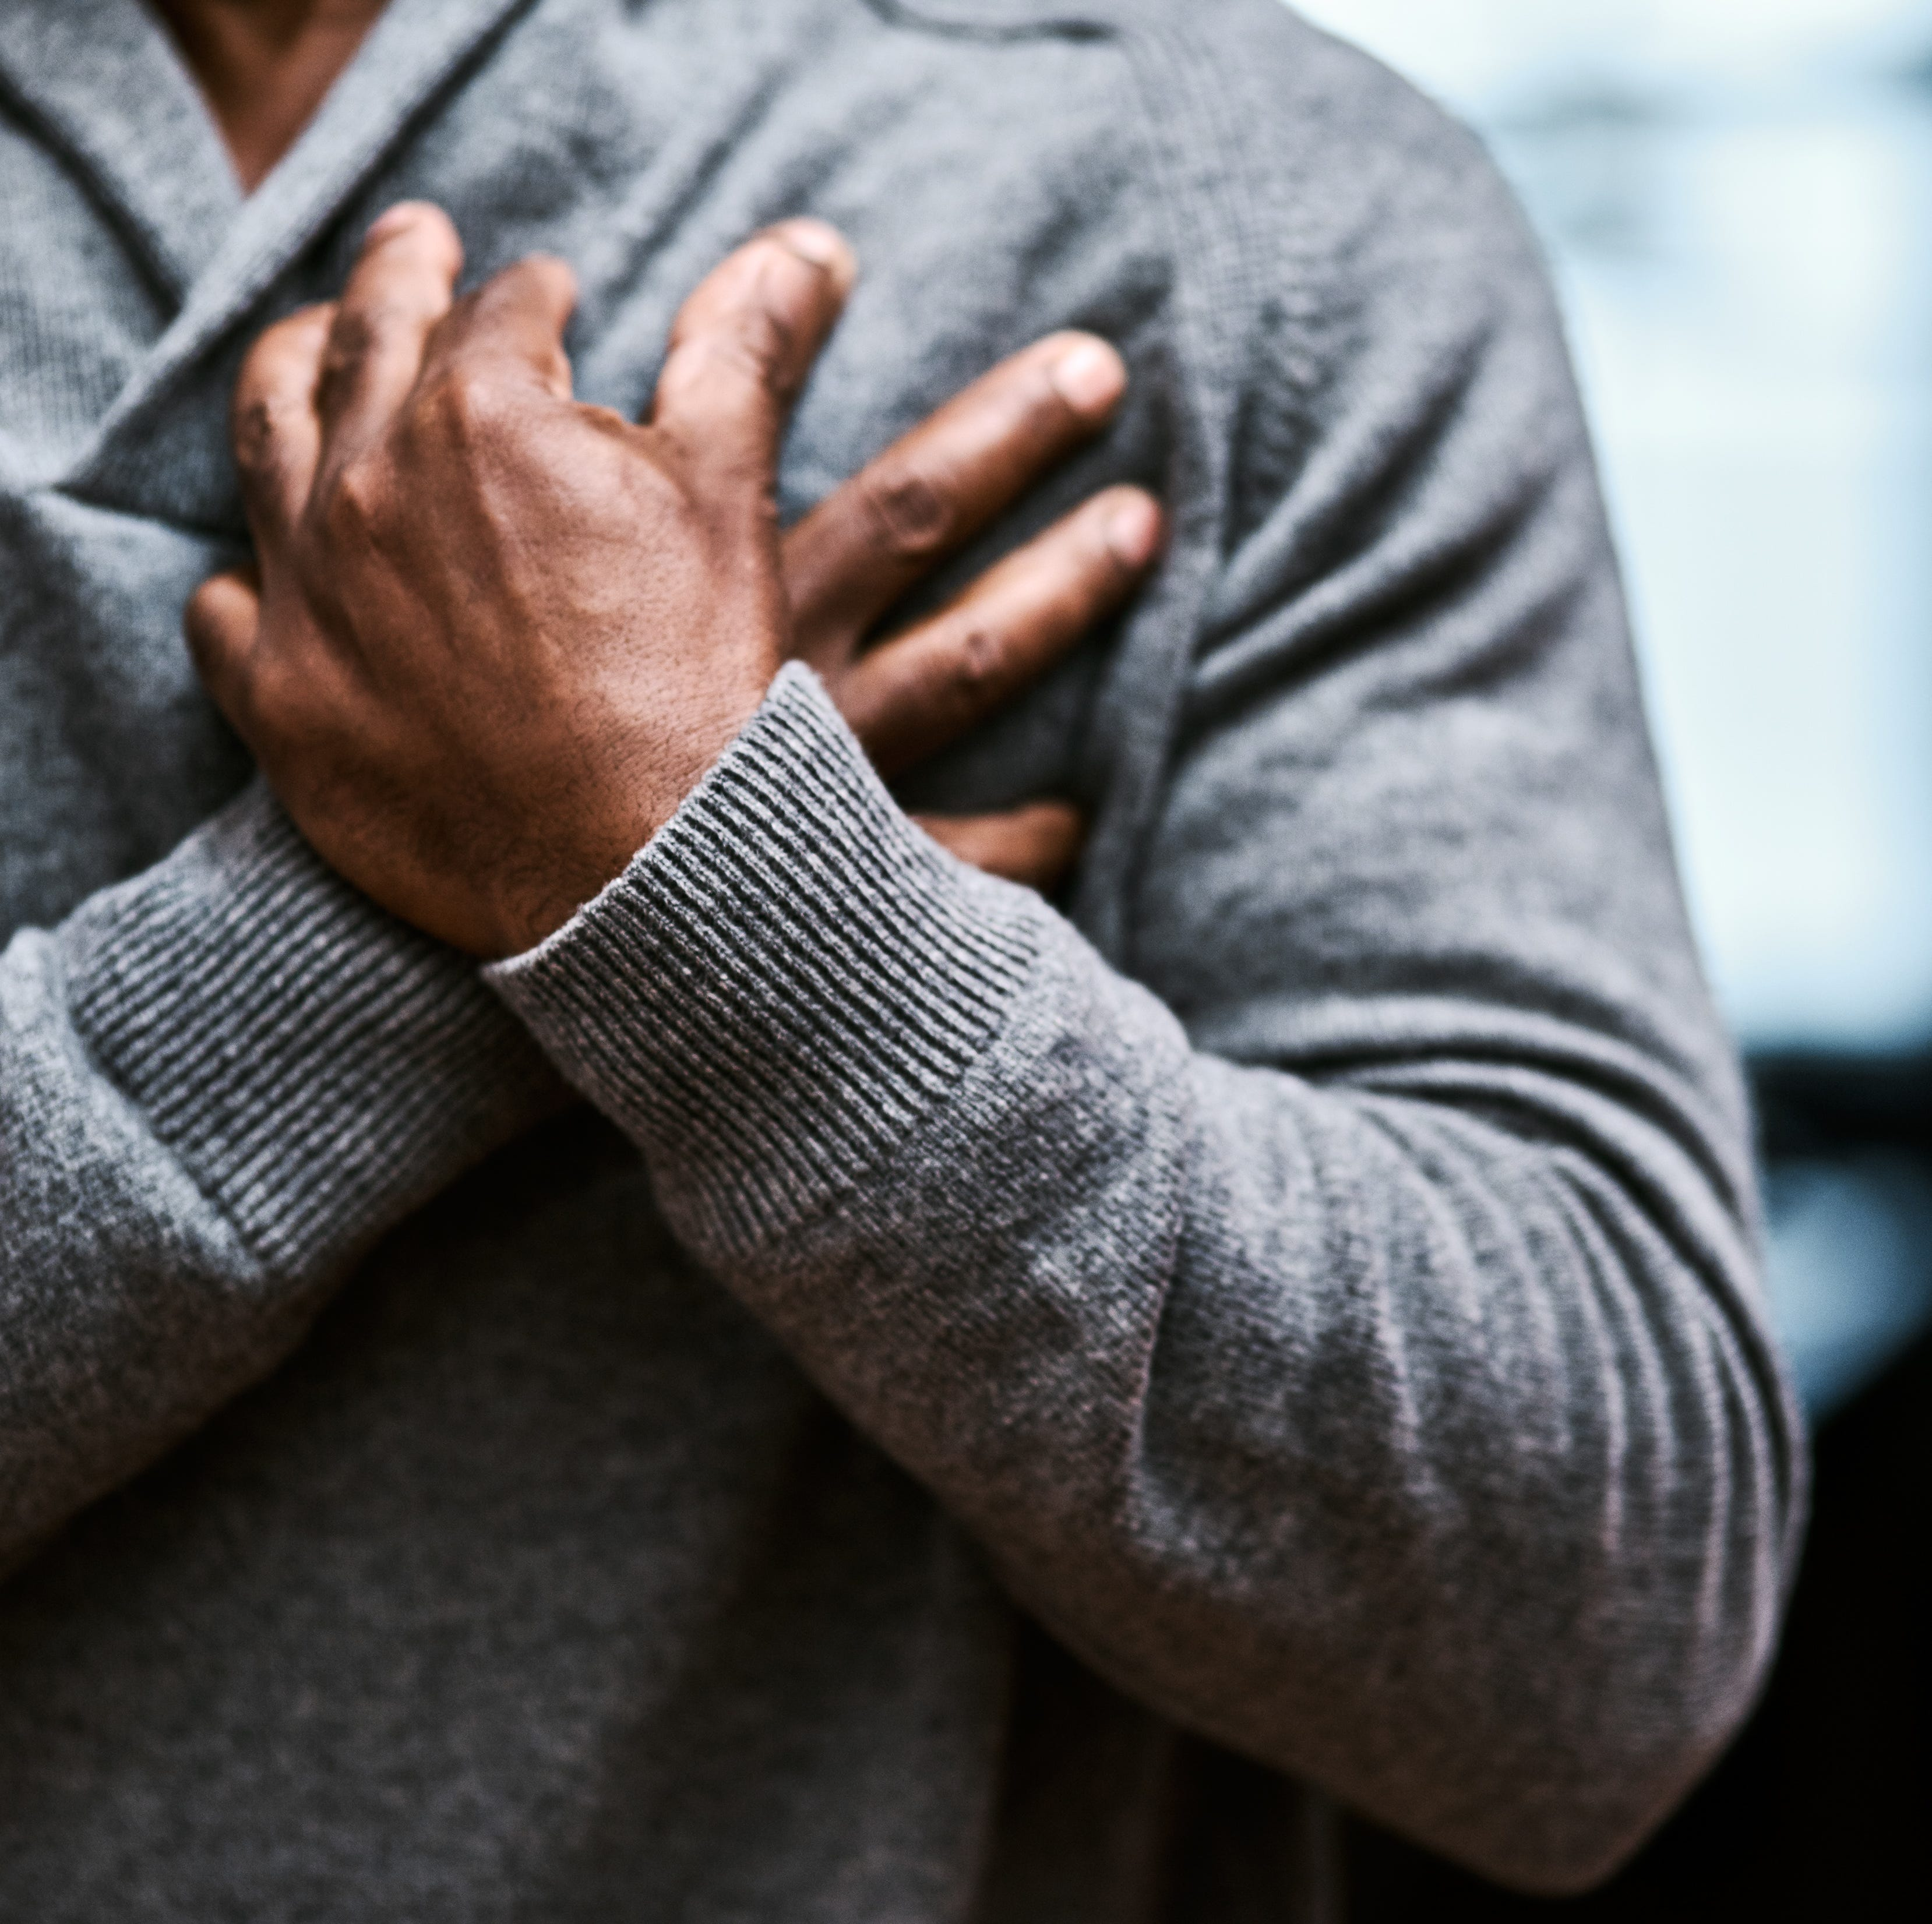 New research out of Sweden found the odds of having a heart attack rise nearly 40 percent on Christmas Eve.